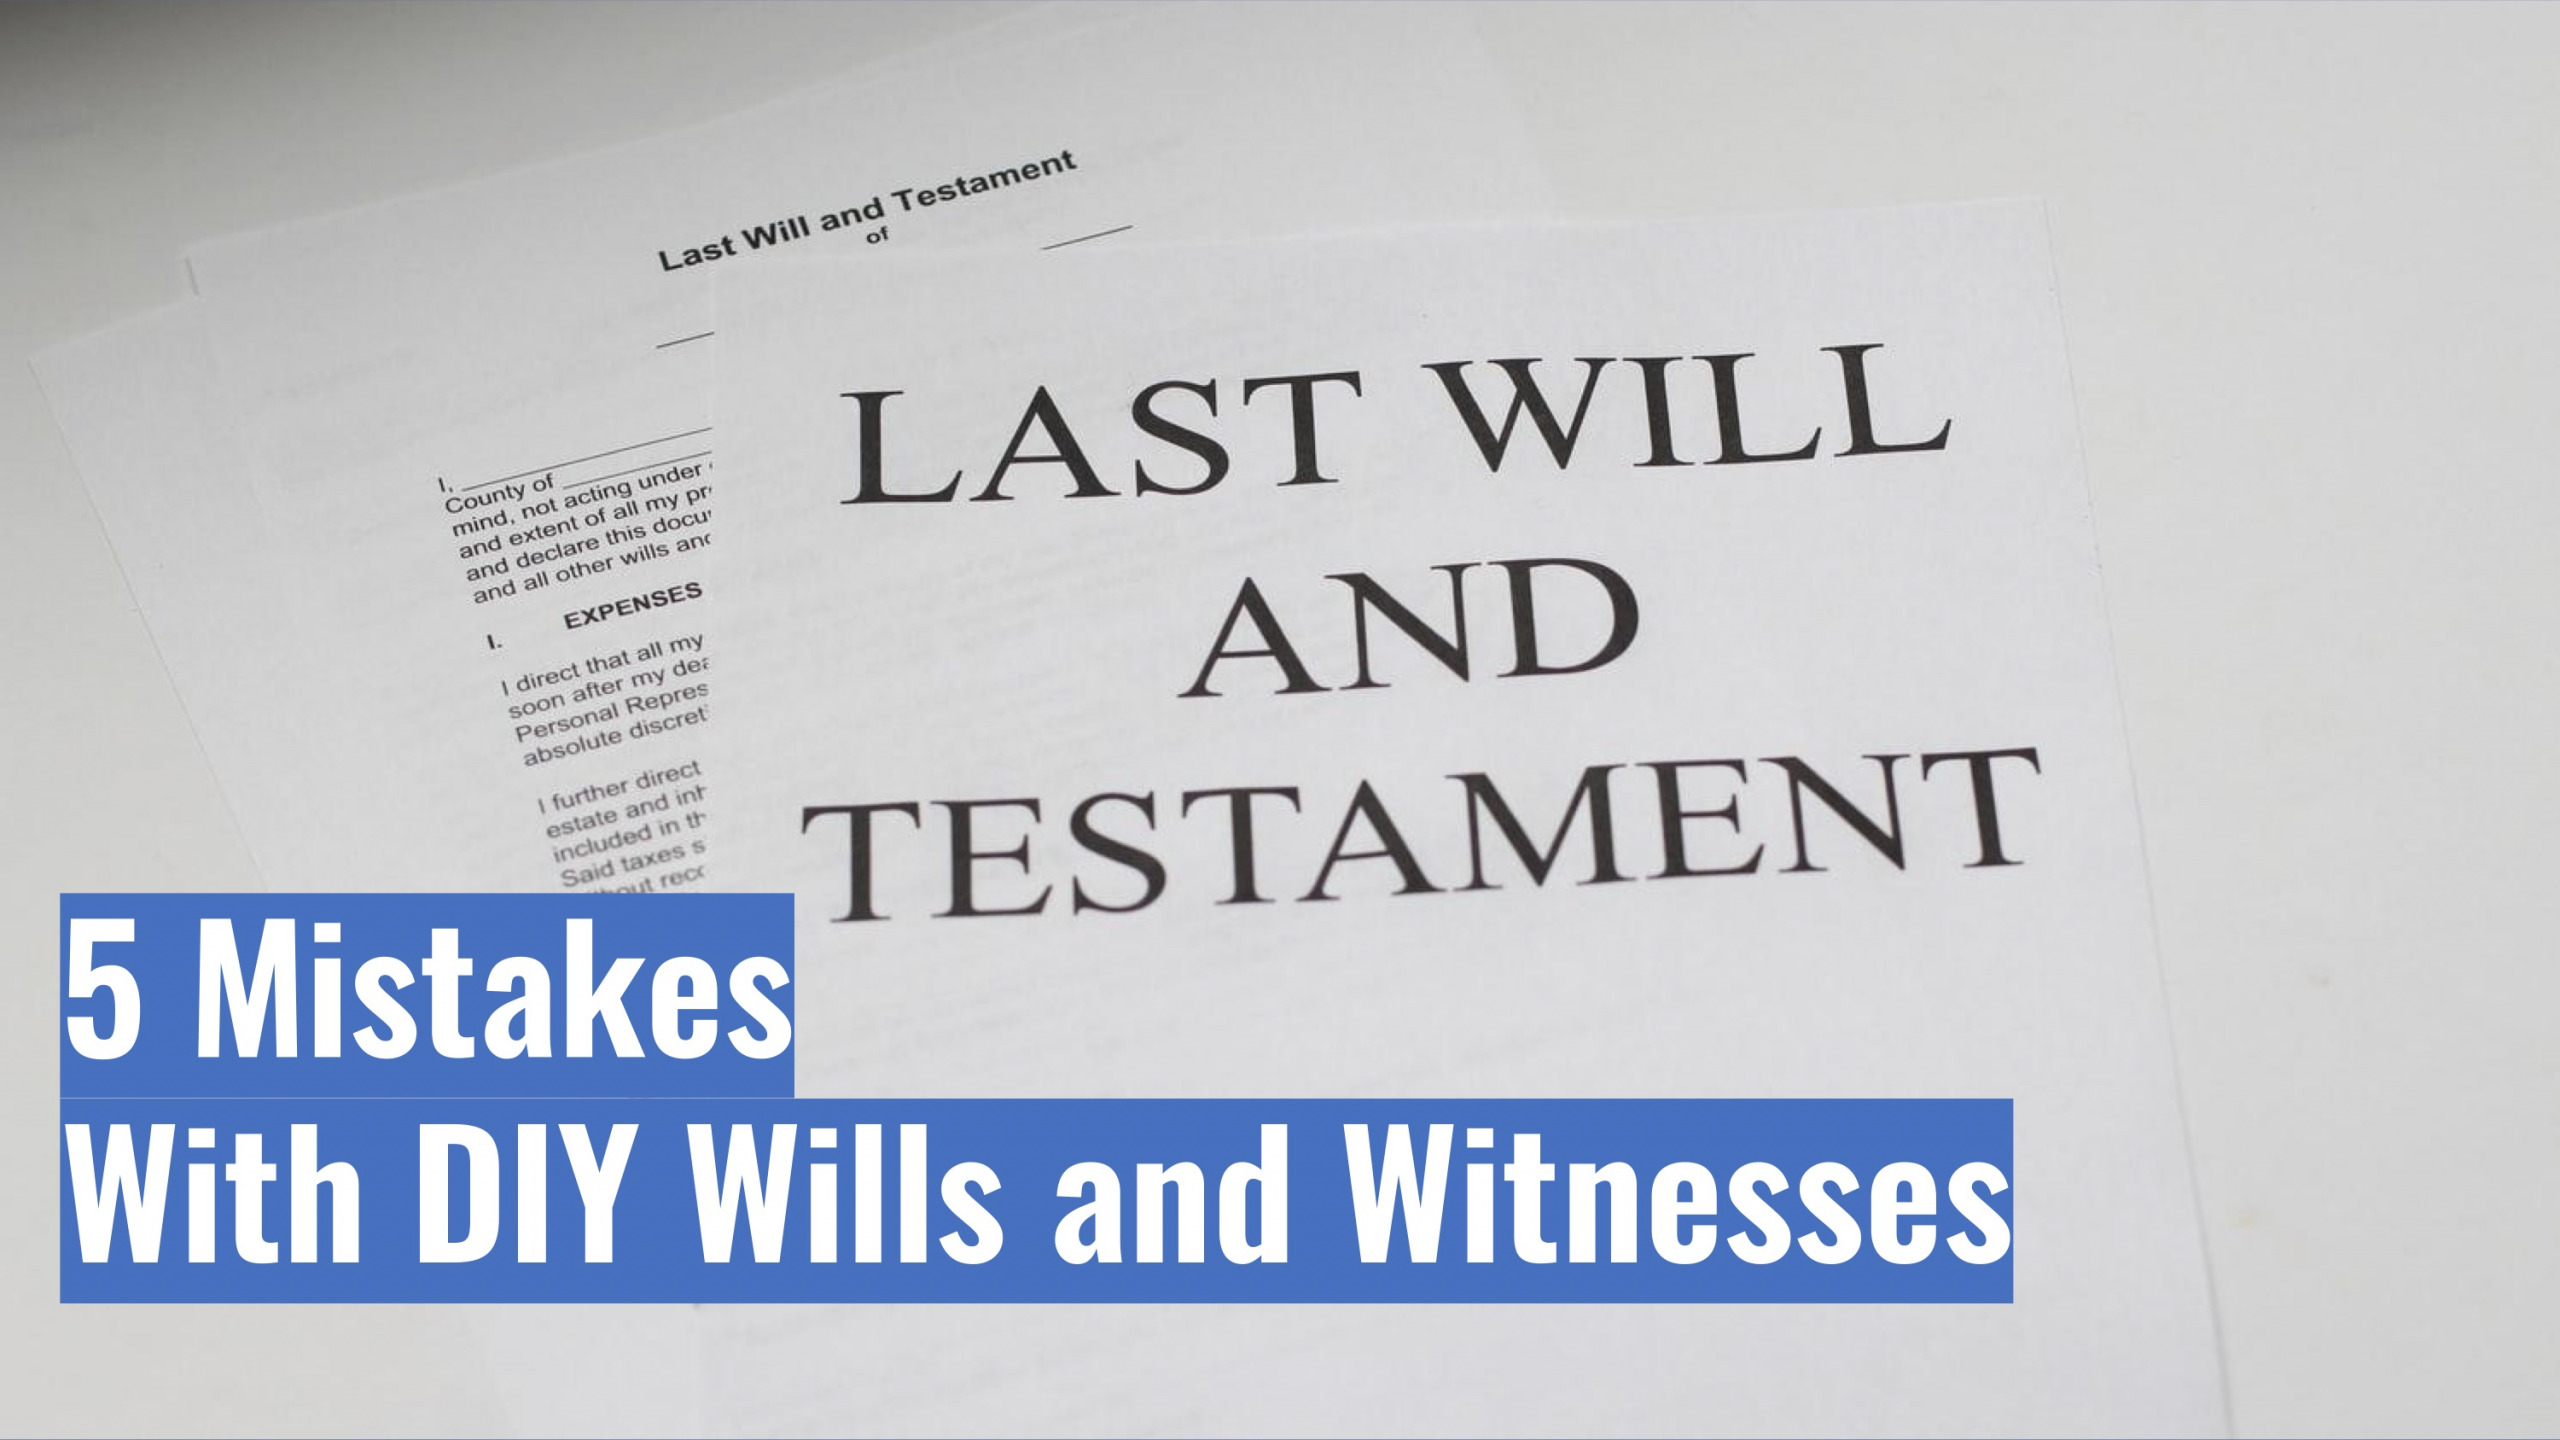 5 Mistakes With DIY Wills and Witnesses